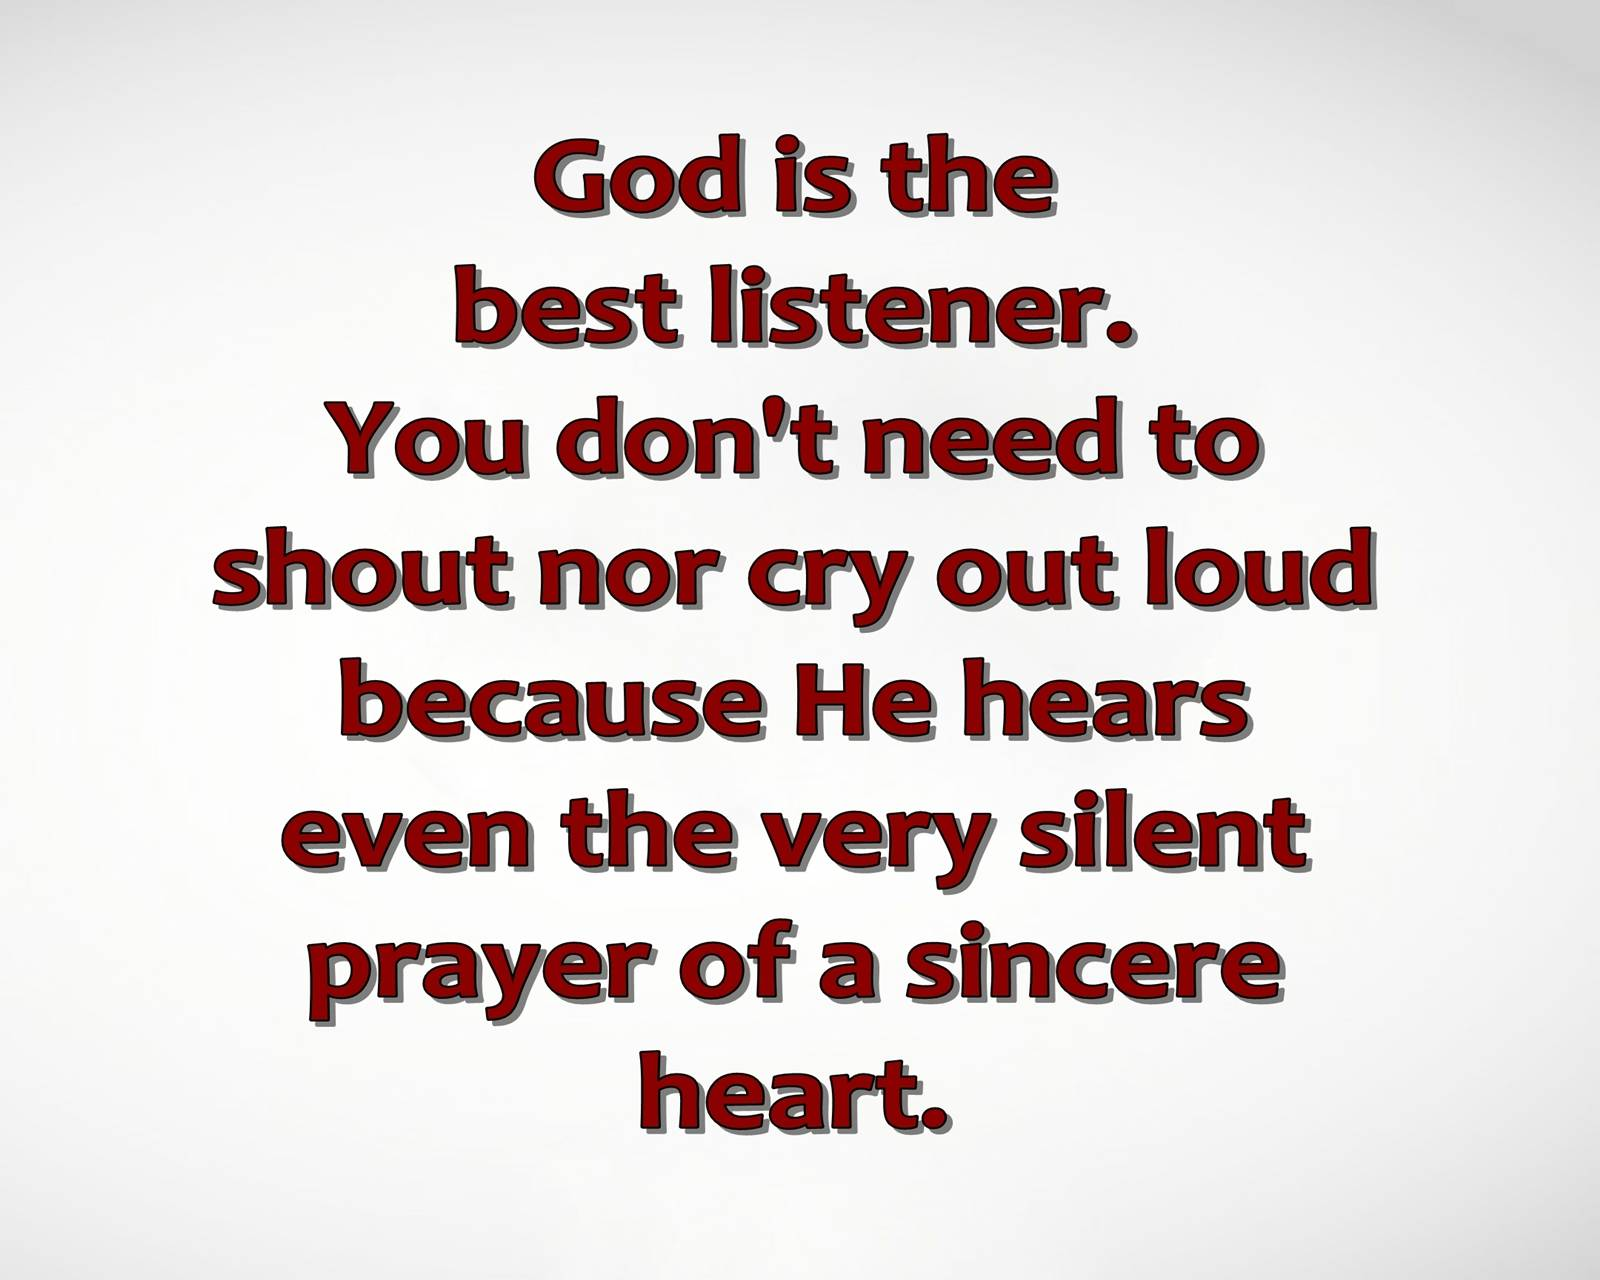 sincere heart